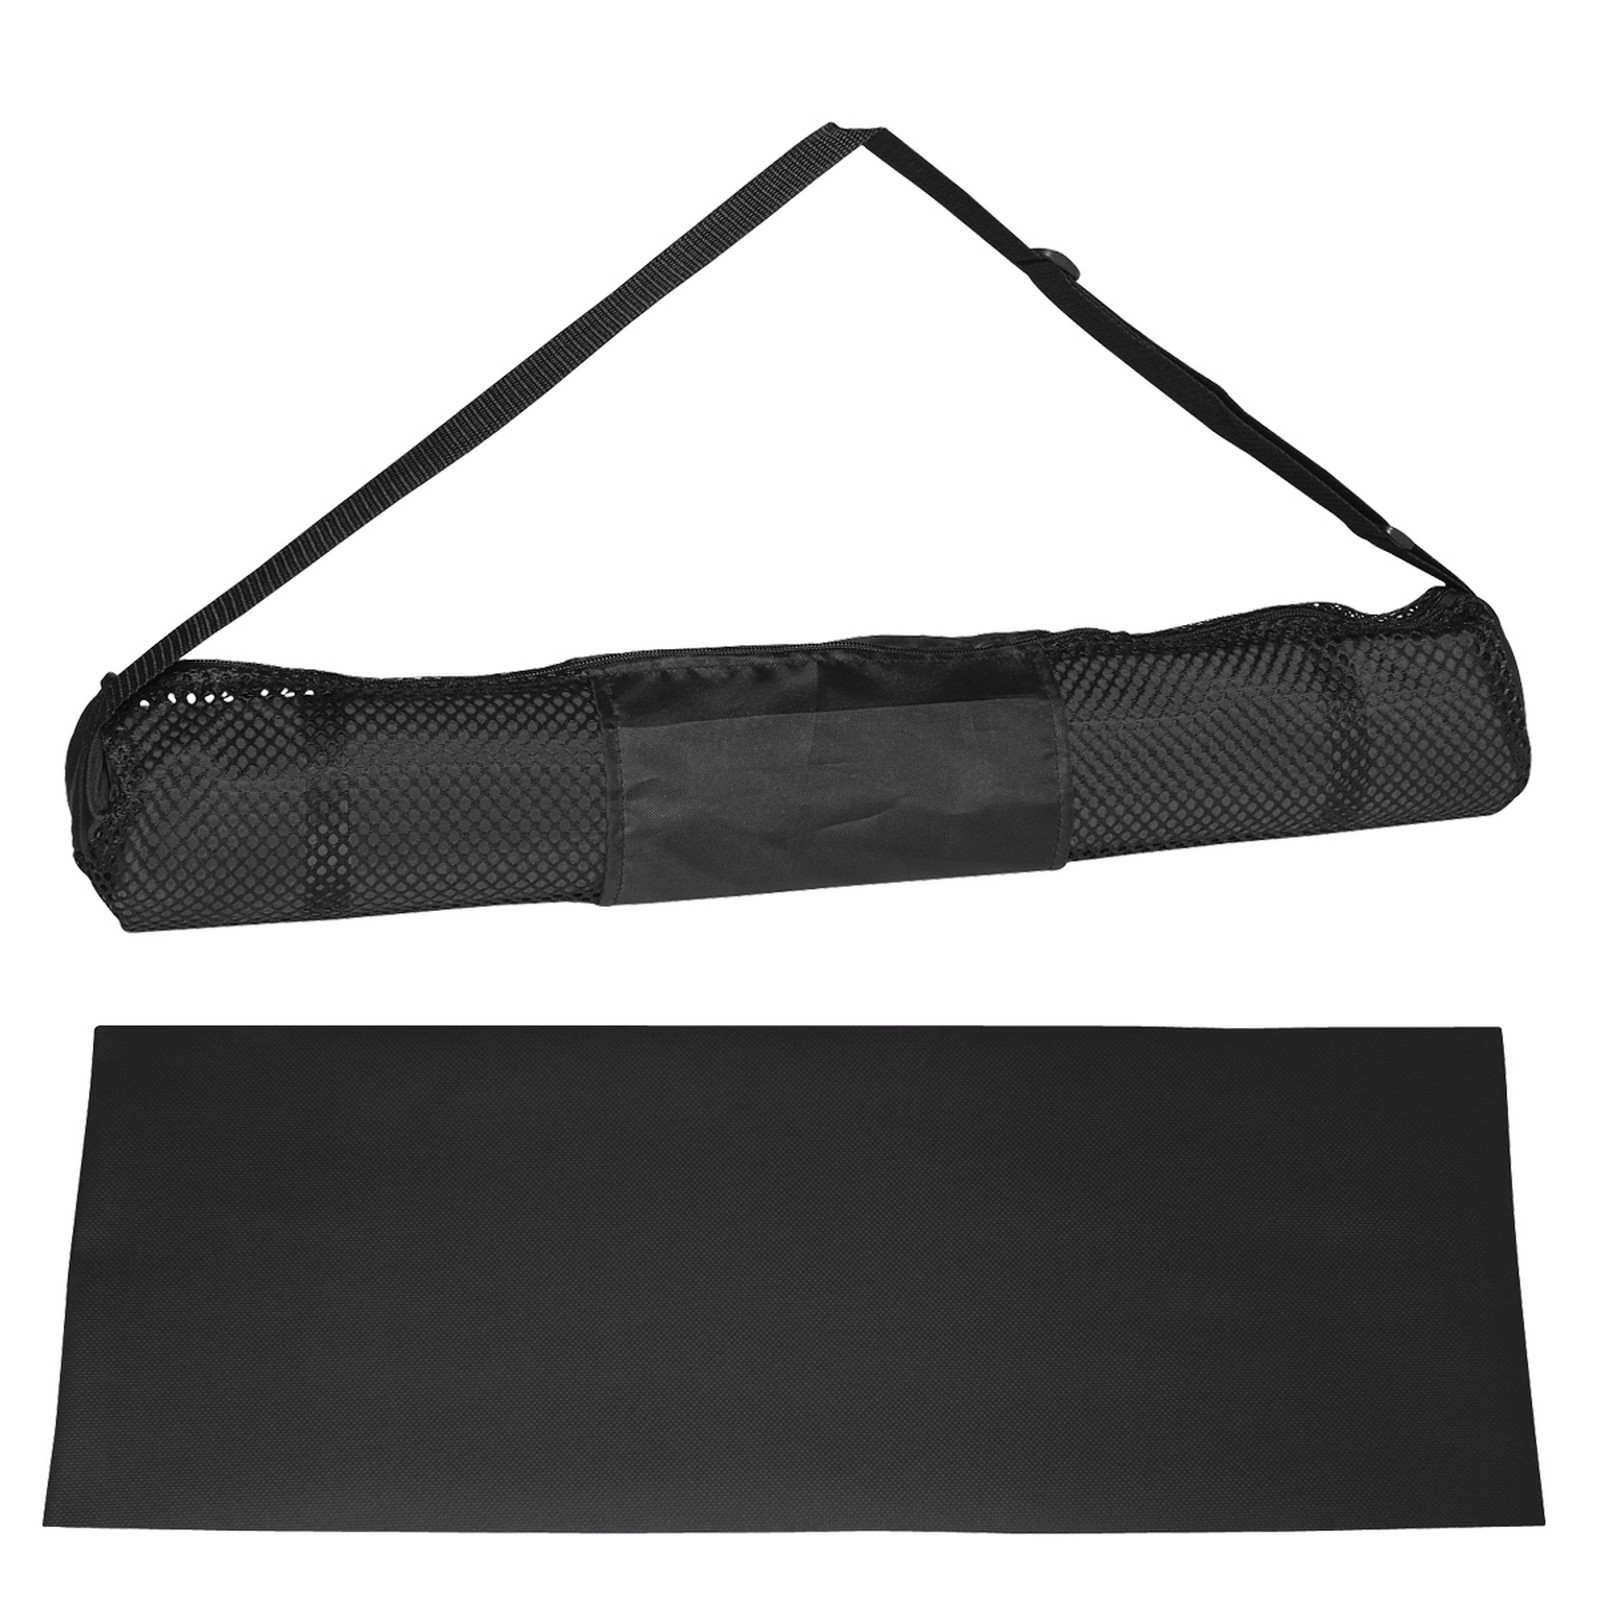 Yoga Mat And Carrying Case - Screen Printed